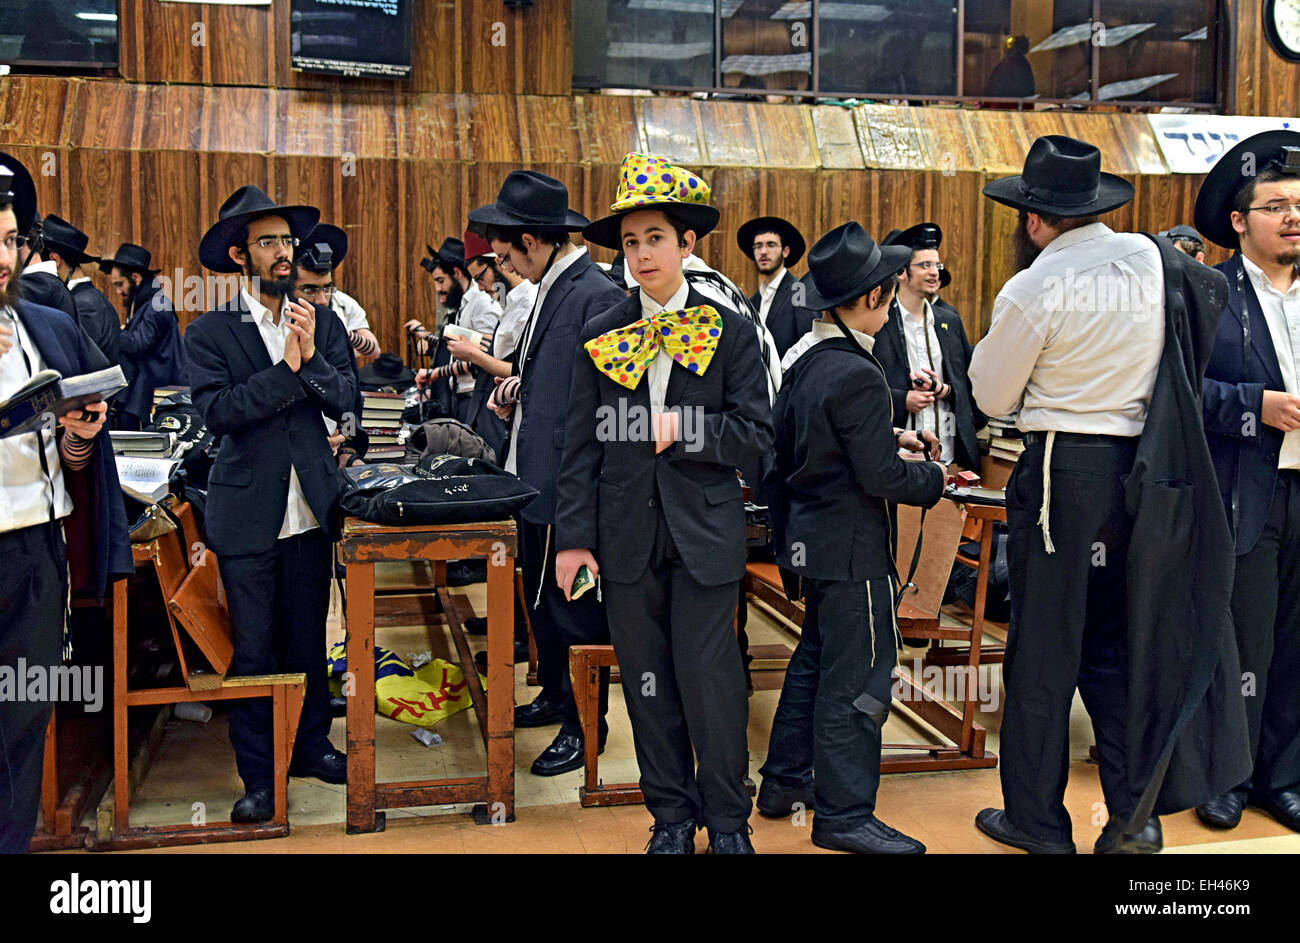 A group of religious Jewish men including including one in a Purim costume at a synagogue in Brooklyn, New York. - Stock Image